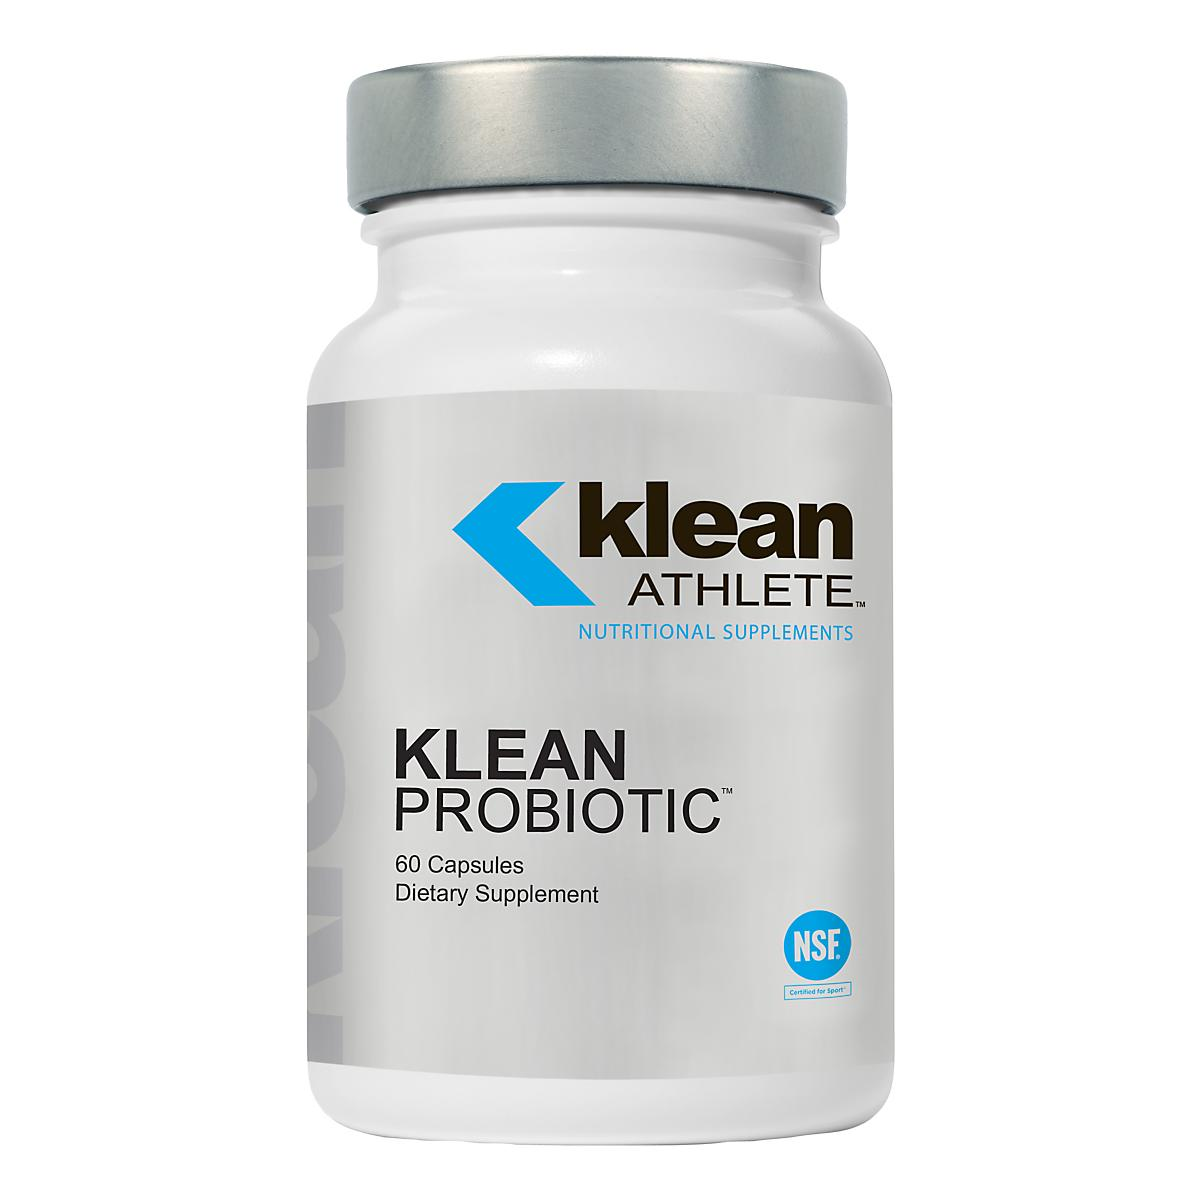 Klean Athlete�Probiotic